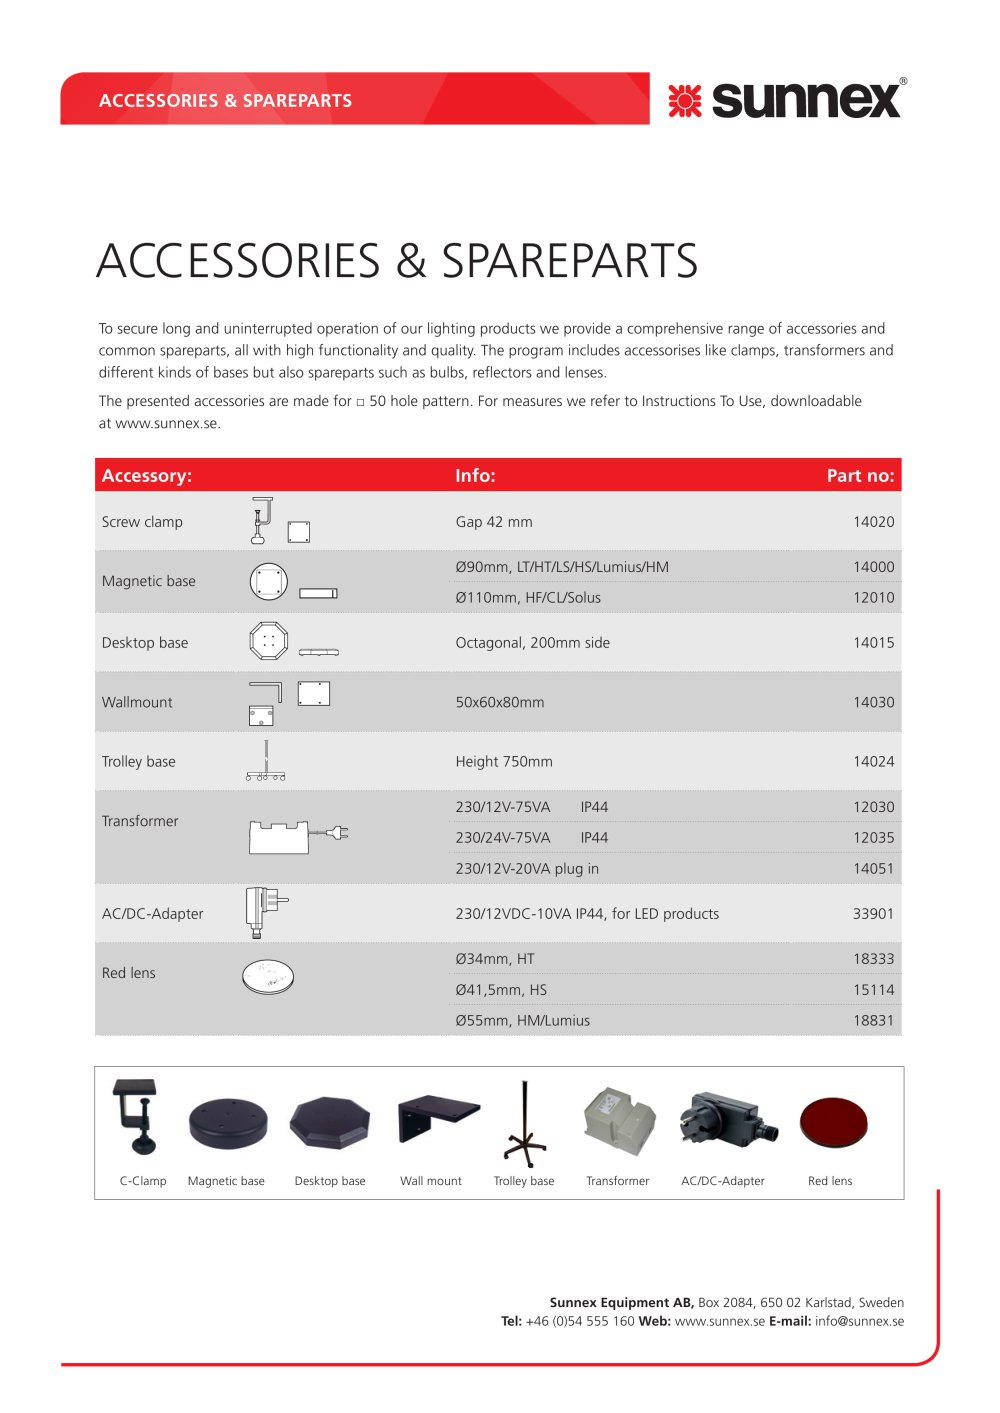 Spare parts, accessories, equipment: a selection of sites